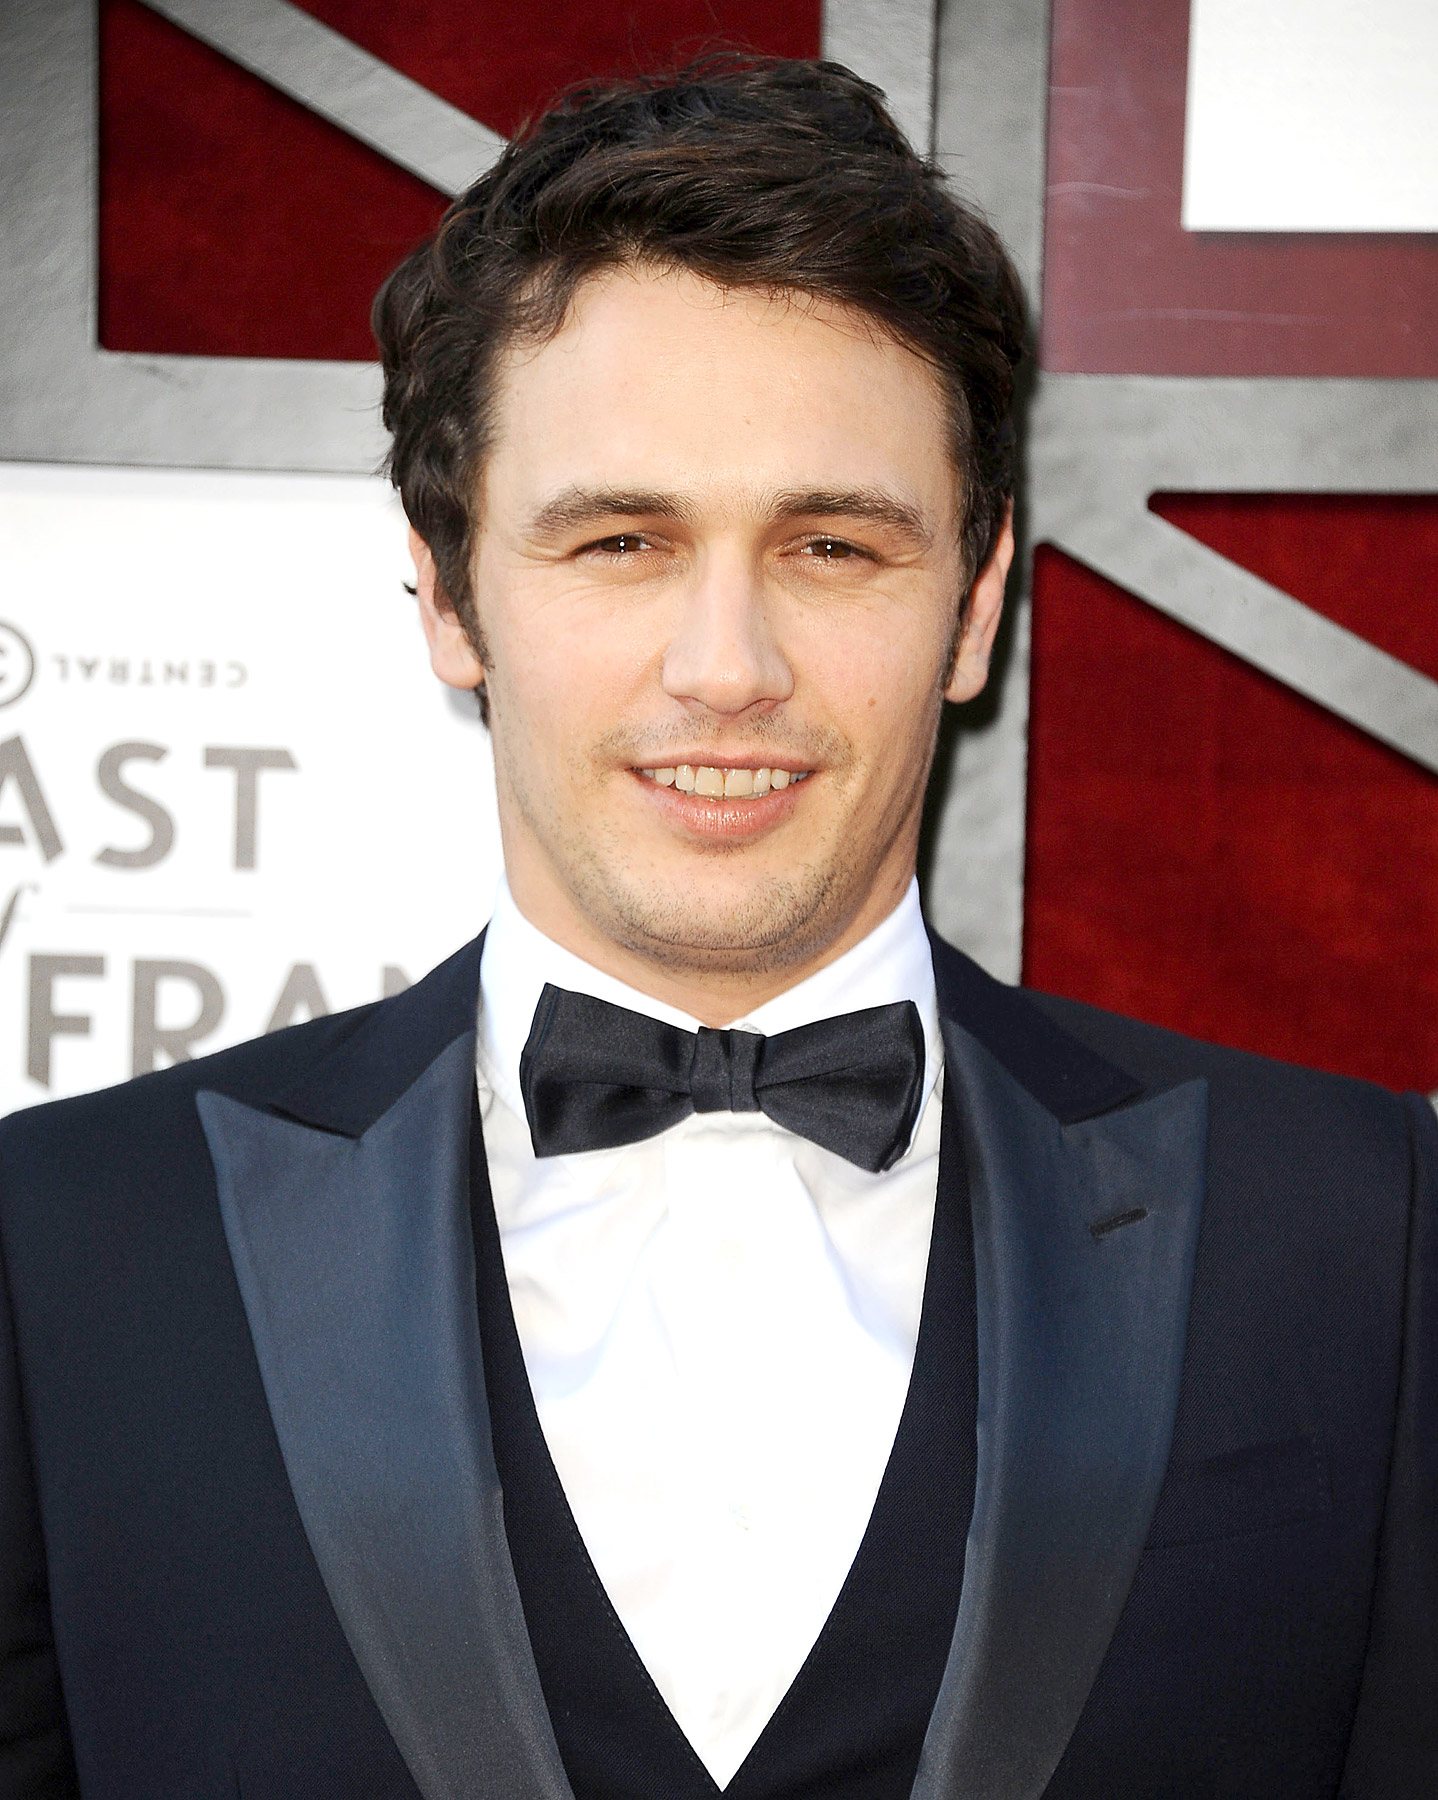 """He may have starred in pot-infused films like 2008's Pineapple Express , but James Franco 's performance is just quality acting. """"I used to smoke weed, but I haven't done it in a long time,"""" Franco told USA Today in August 2008. """"Everybody, even now, thinks, 'That guy is stoned.' It's just the way I talk, because I don't smoke weed. Somehow, there's something about me, the way I talk, that implies that I'm on drugs."""""""